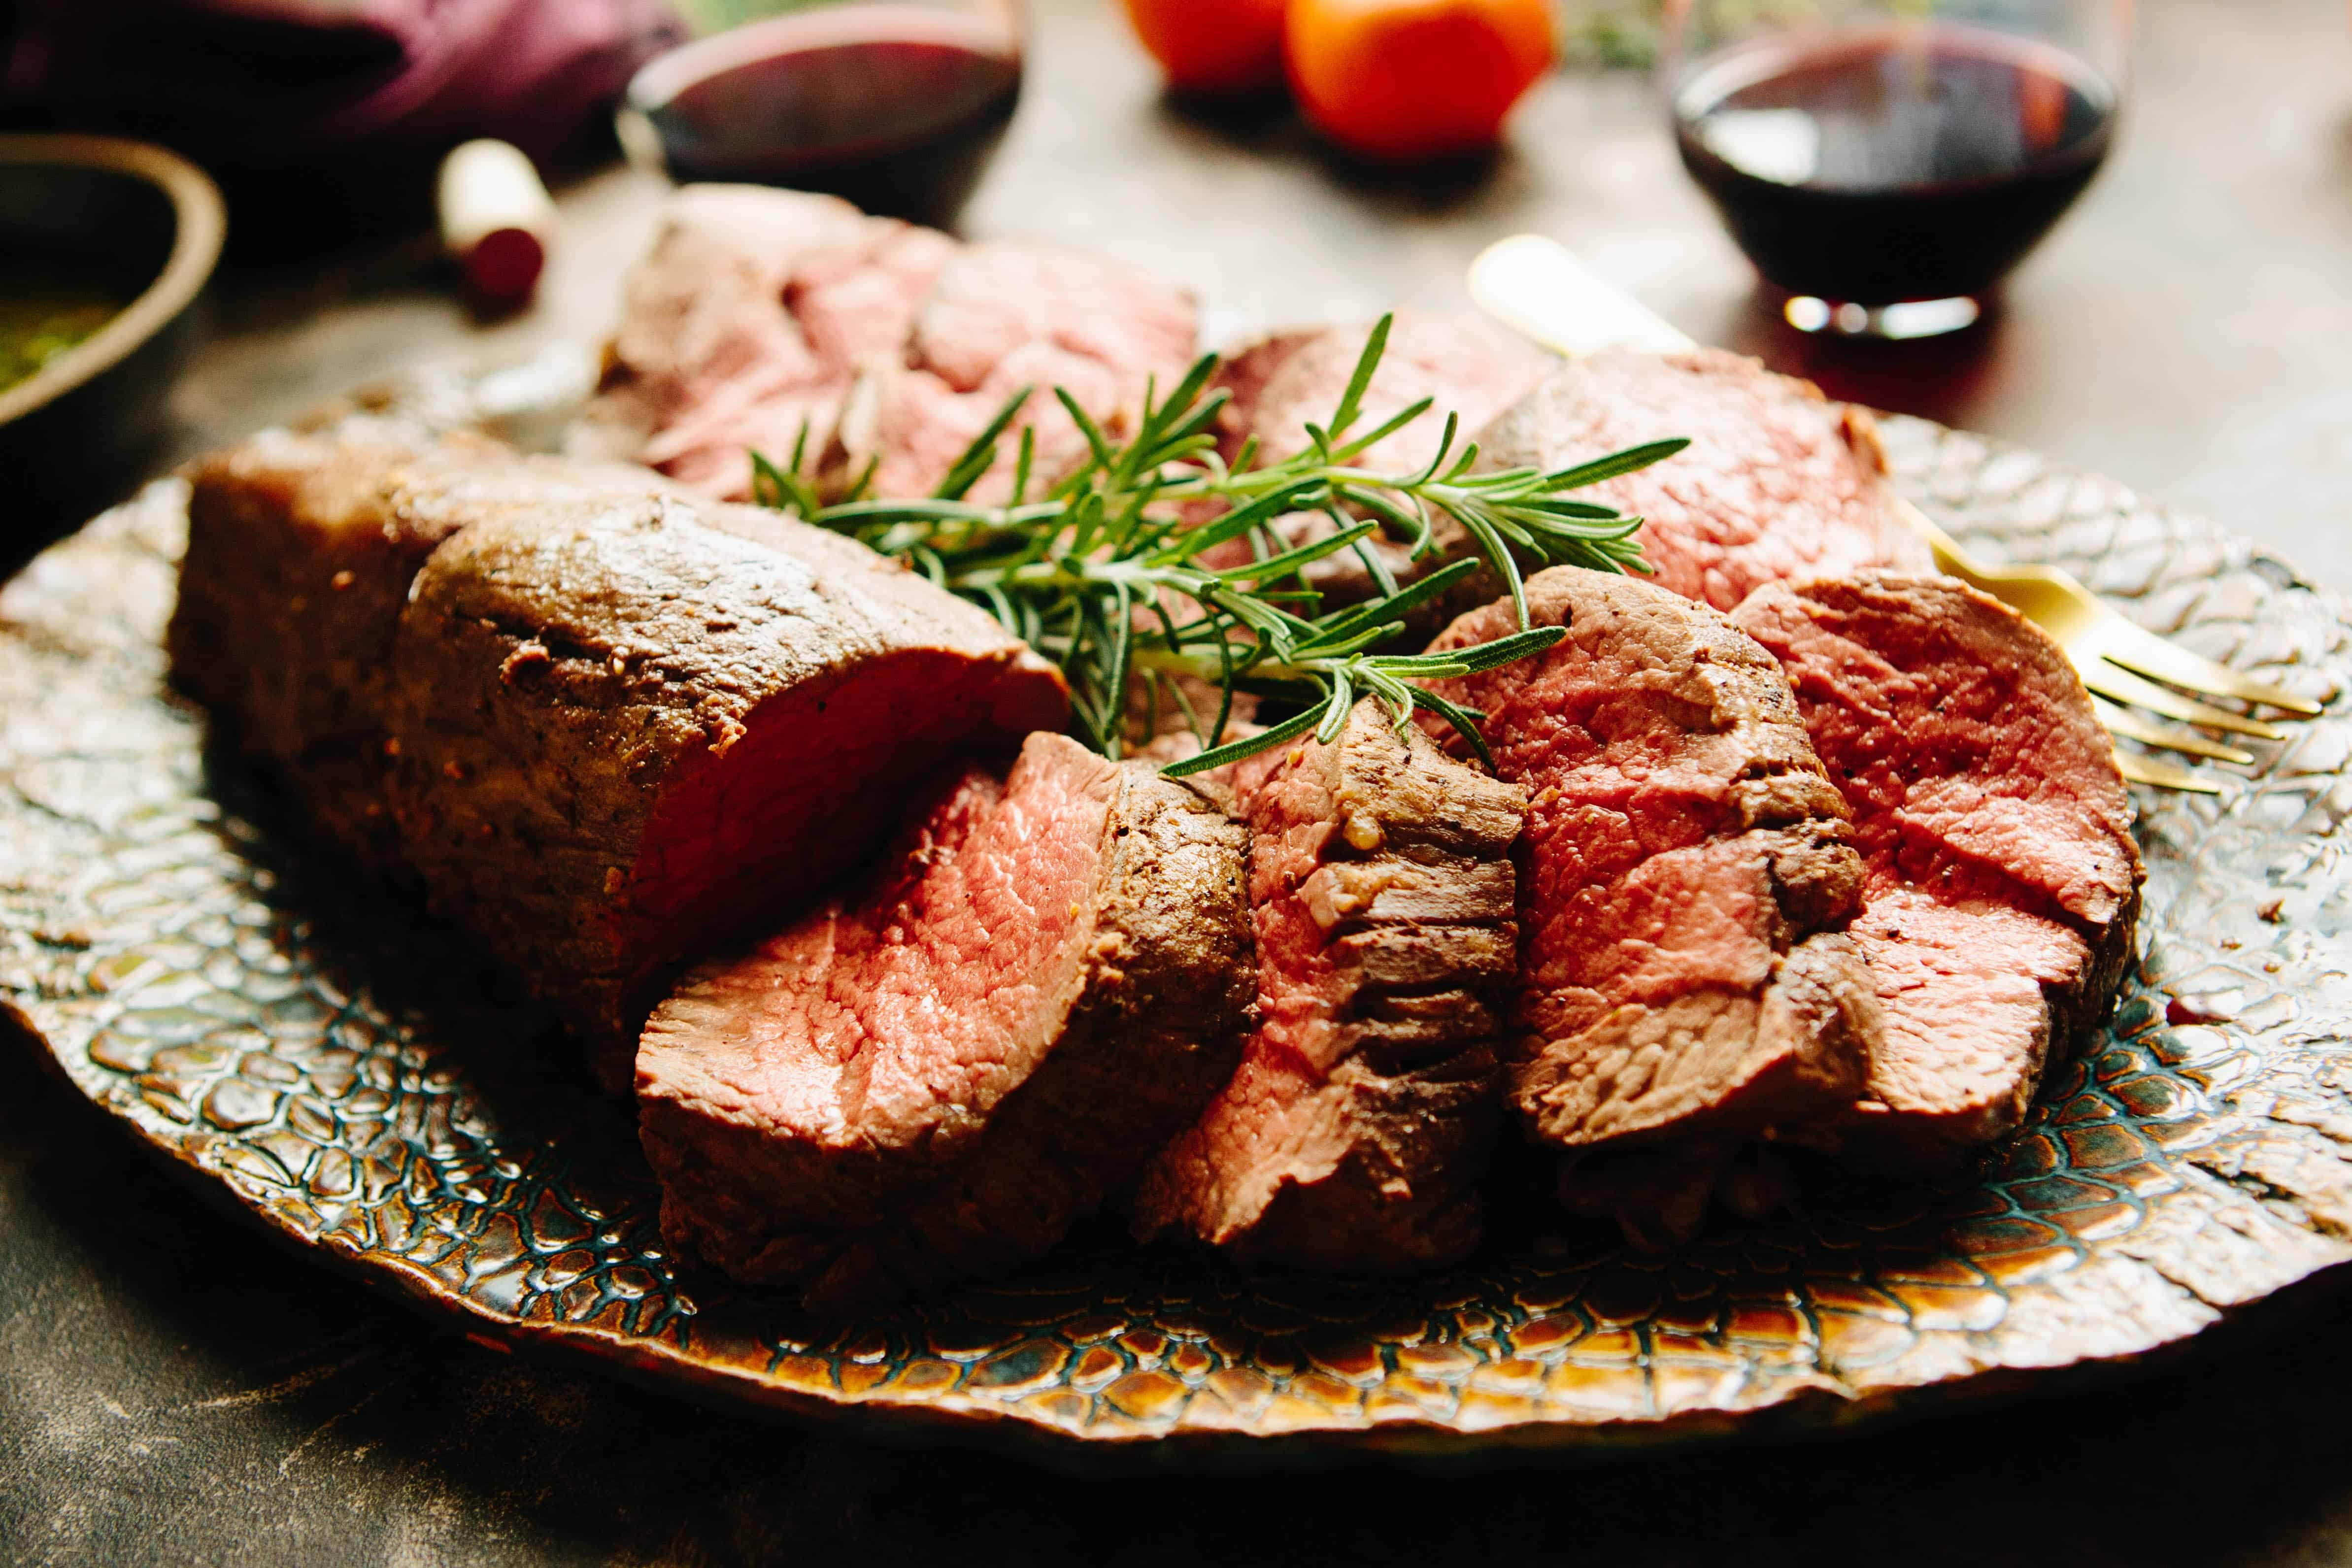 Whole Roasted Beef Tenderloin sliced on a platter, rare, with rosemary garnish. glass of red wine in background